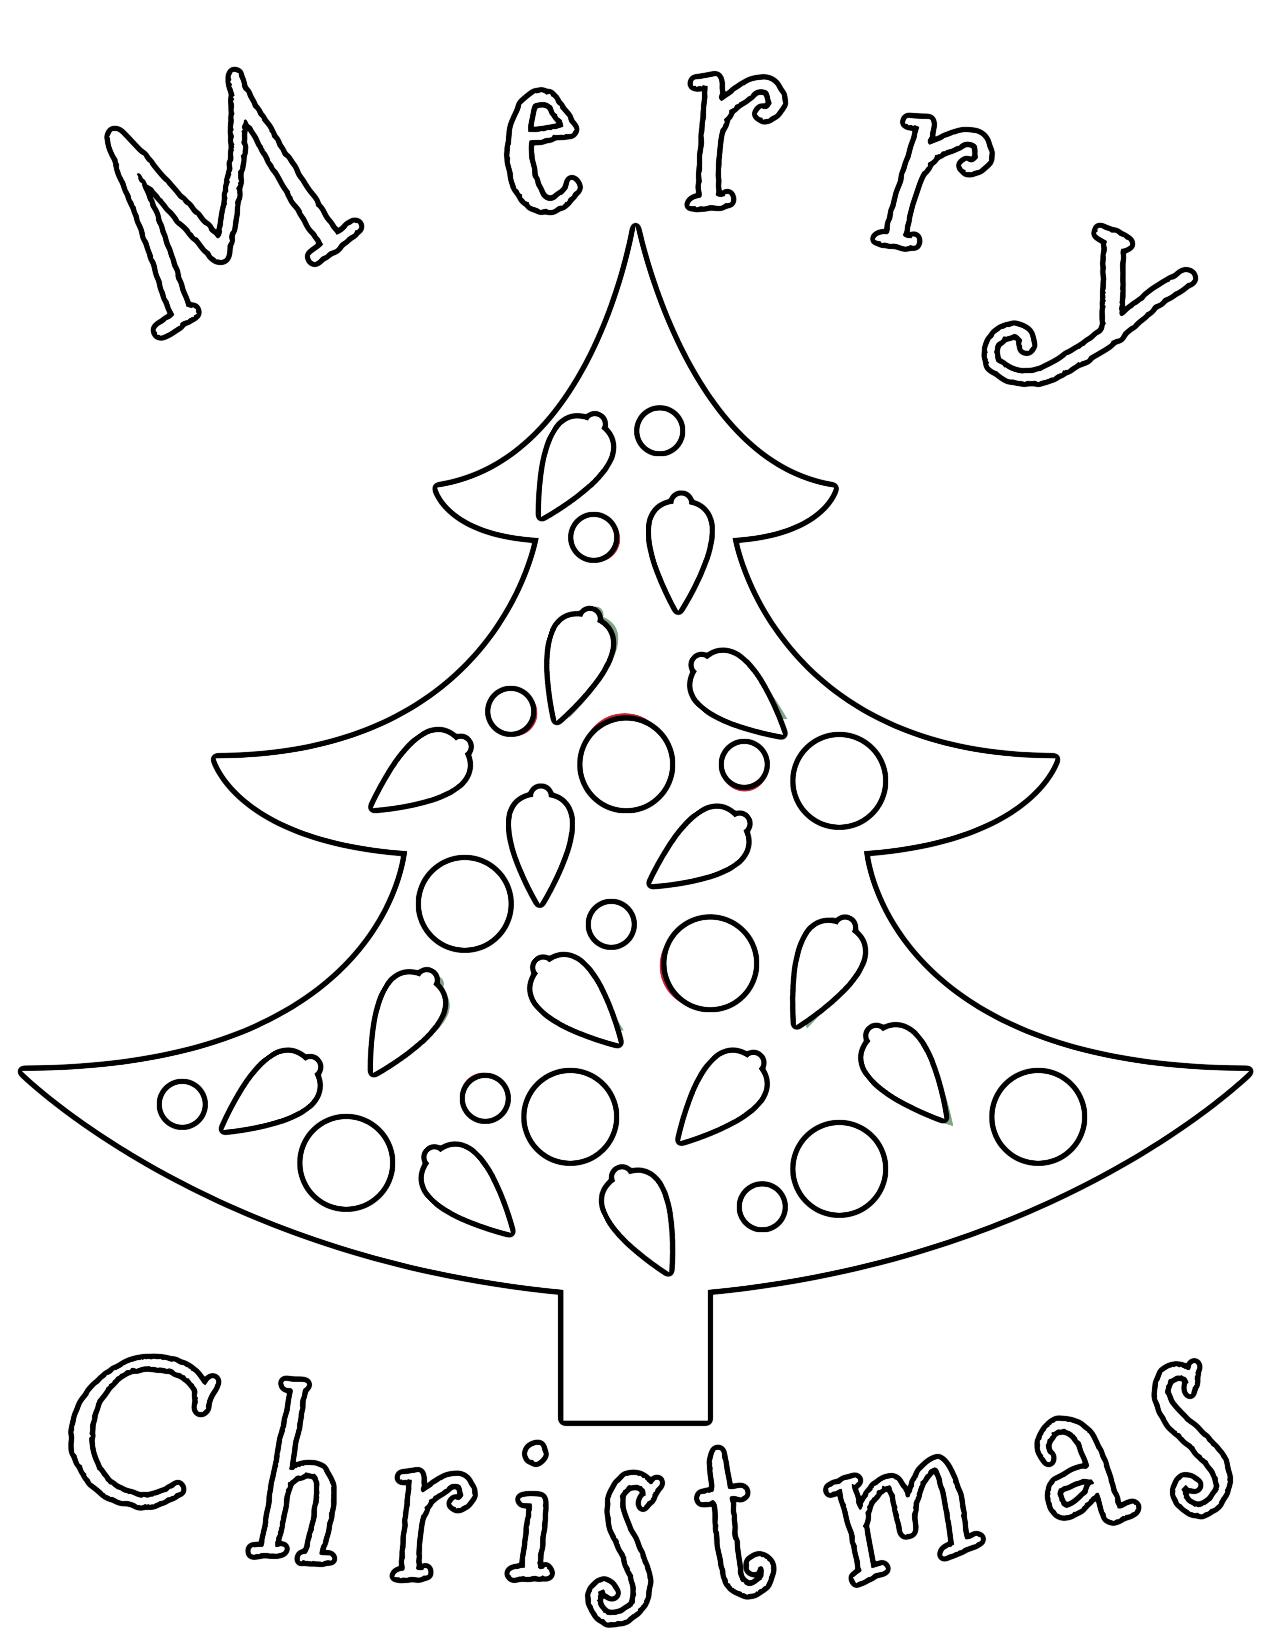 Simple christmas coloring pages. Old fashioned christmas coloring pages. Christmas tree coloring pages. Christmas coloring pages pdf. Santa coloring pages. Easy Christmas coloring pages. Christmas coloring pages for preschoolers. Cute christmas coloring pages. #christmas #coloringpages #holiday #coloring #kids #fun #family #activity #learning